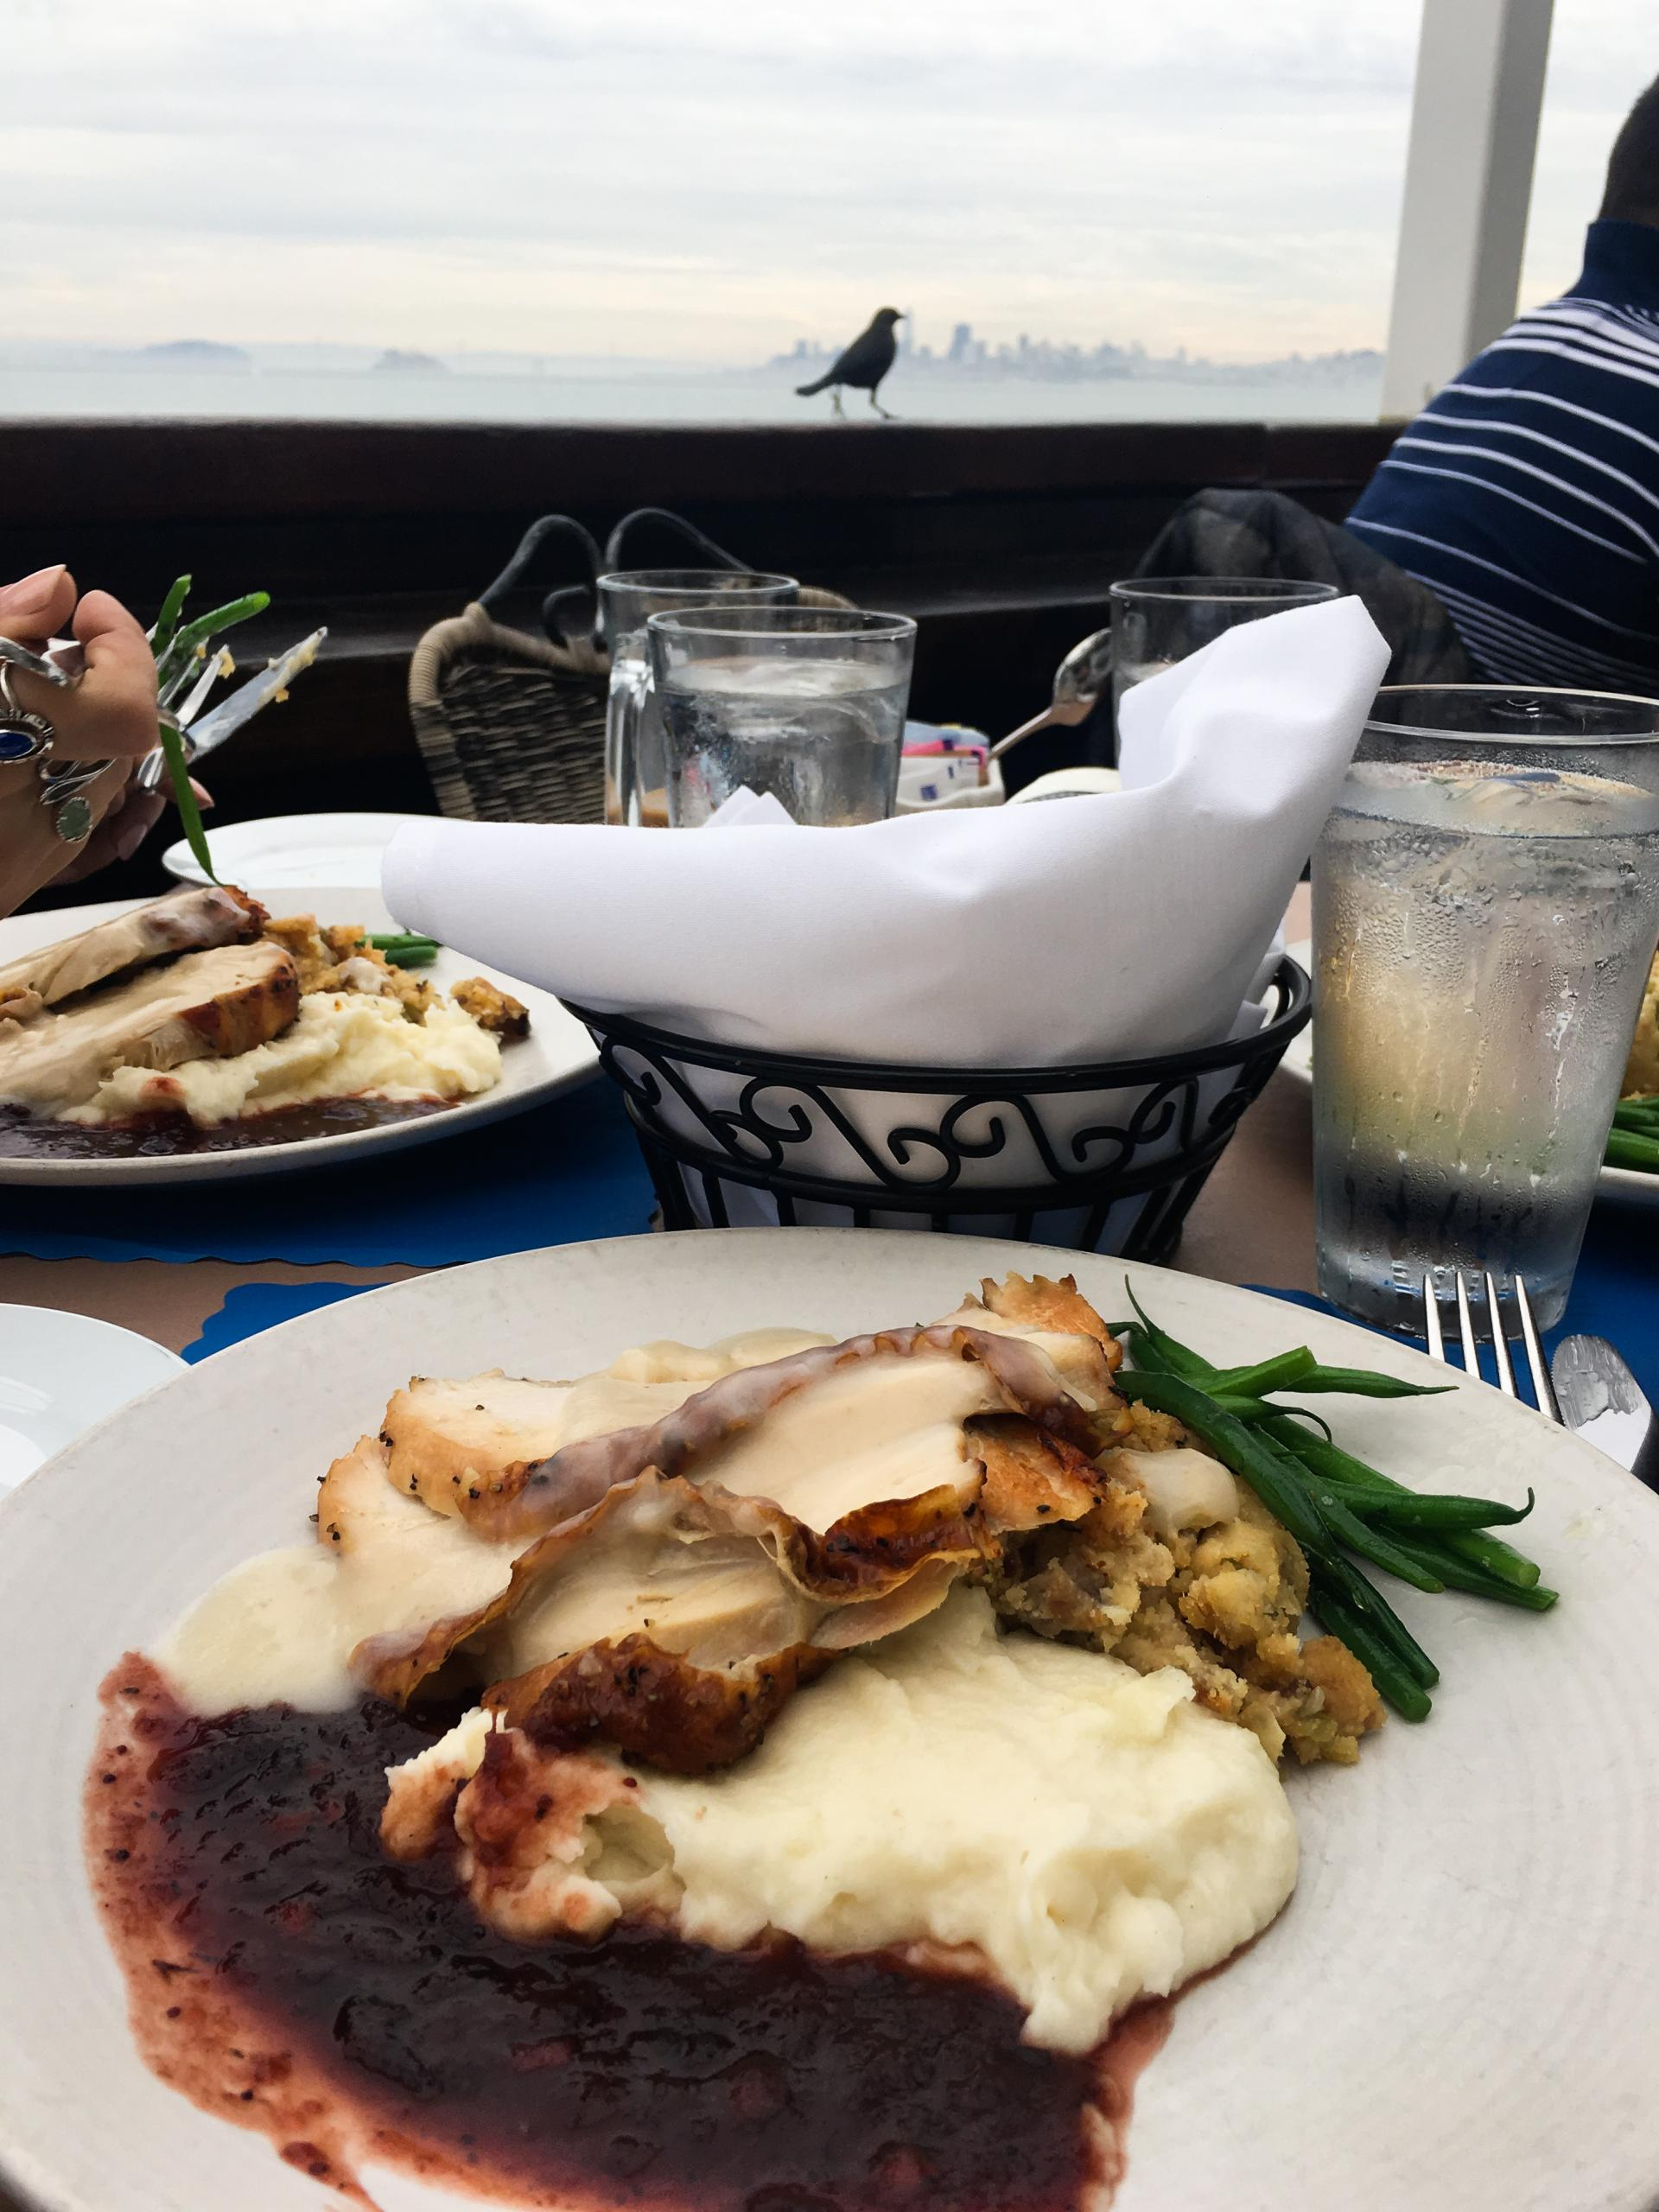 Thanksgiving Dinner at The Trident, Sausalito - Top 10 Places I ate in the USA - Rachel Nicole UK Blogger